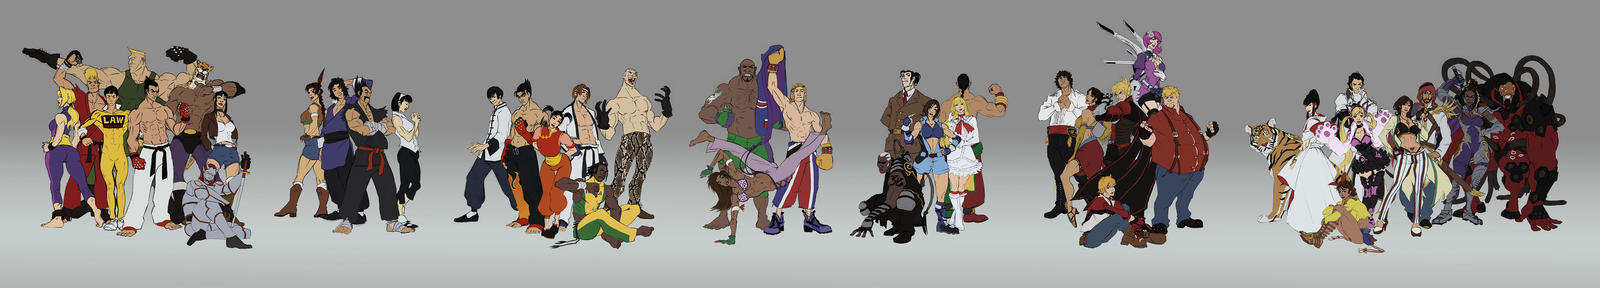 Tekken - Cast by 1981kuro